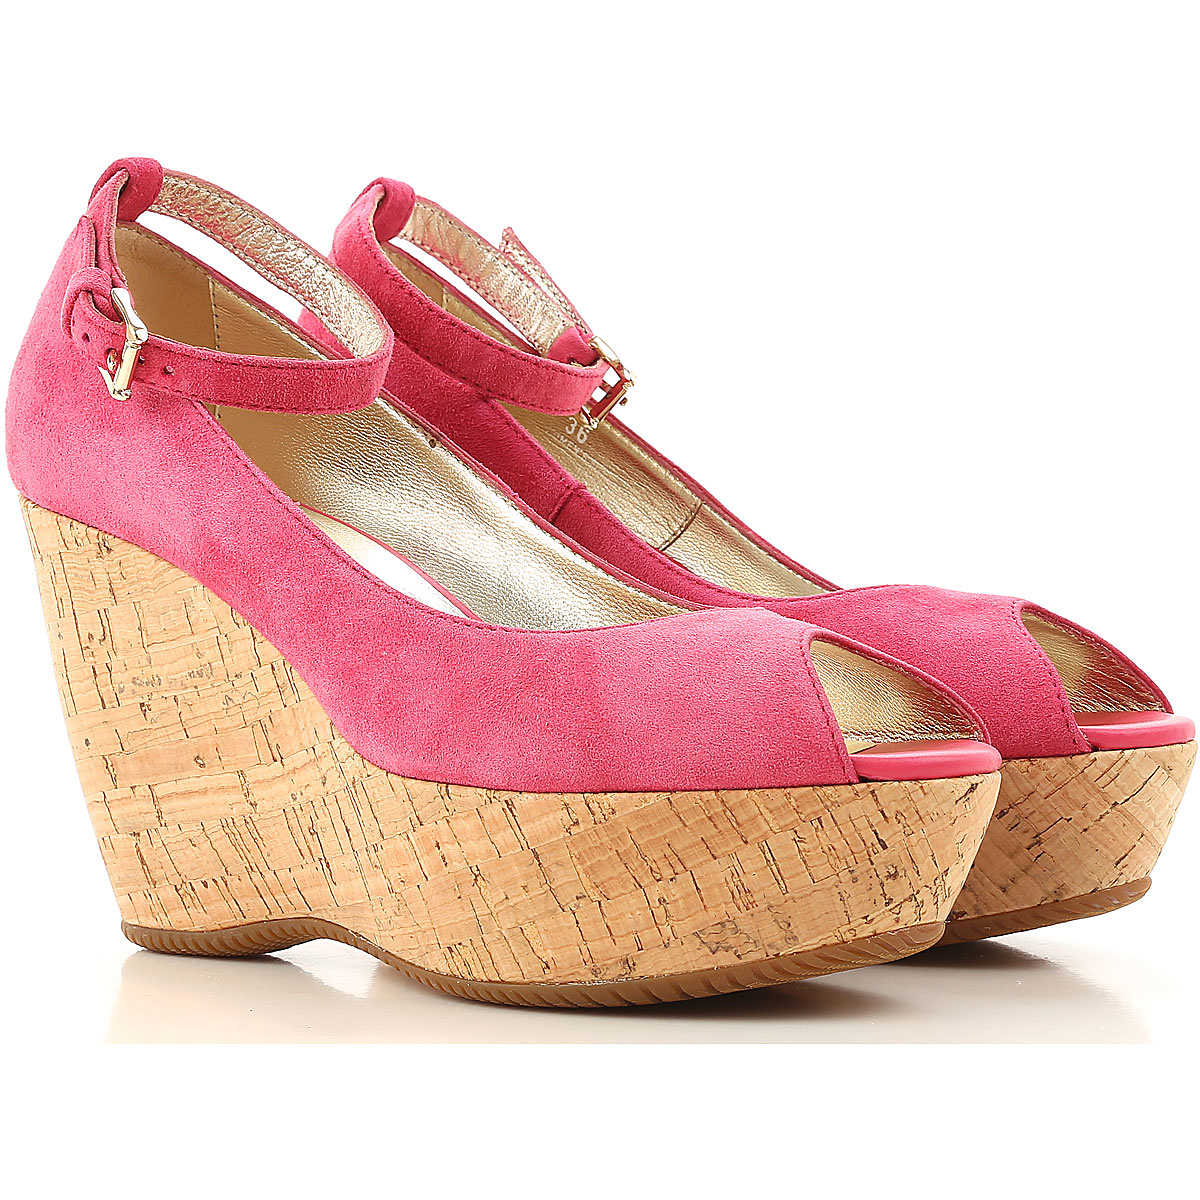 Hogan Wedges for Women On Sale in Outlet Fuchsia DK - GOOFASH - Womens HOUSE SHOES